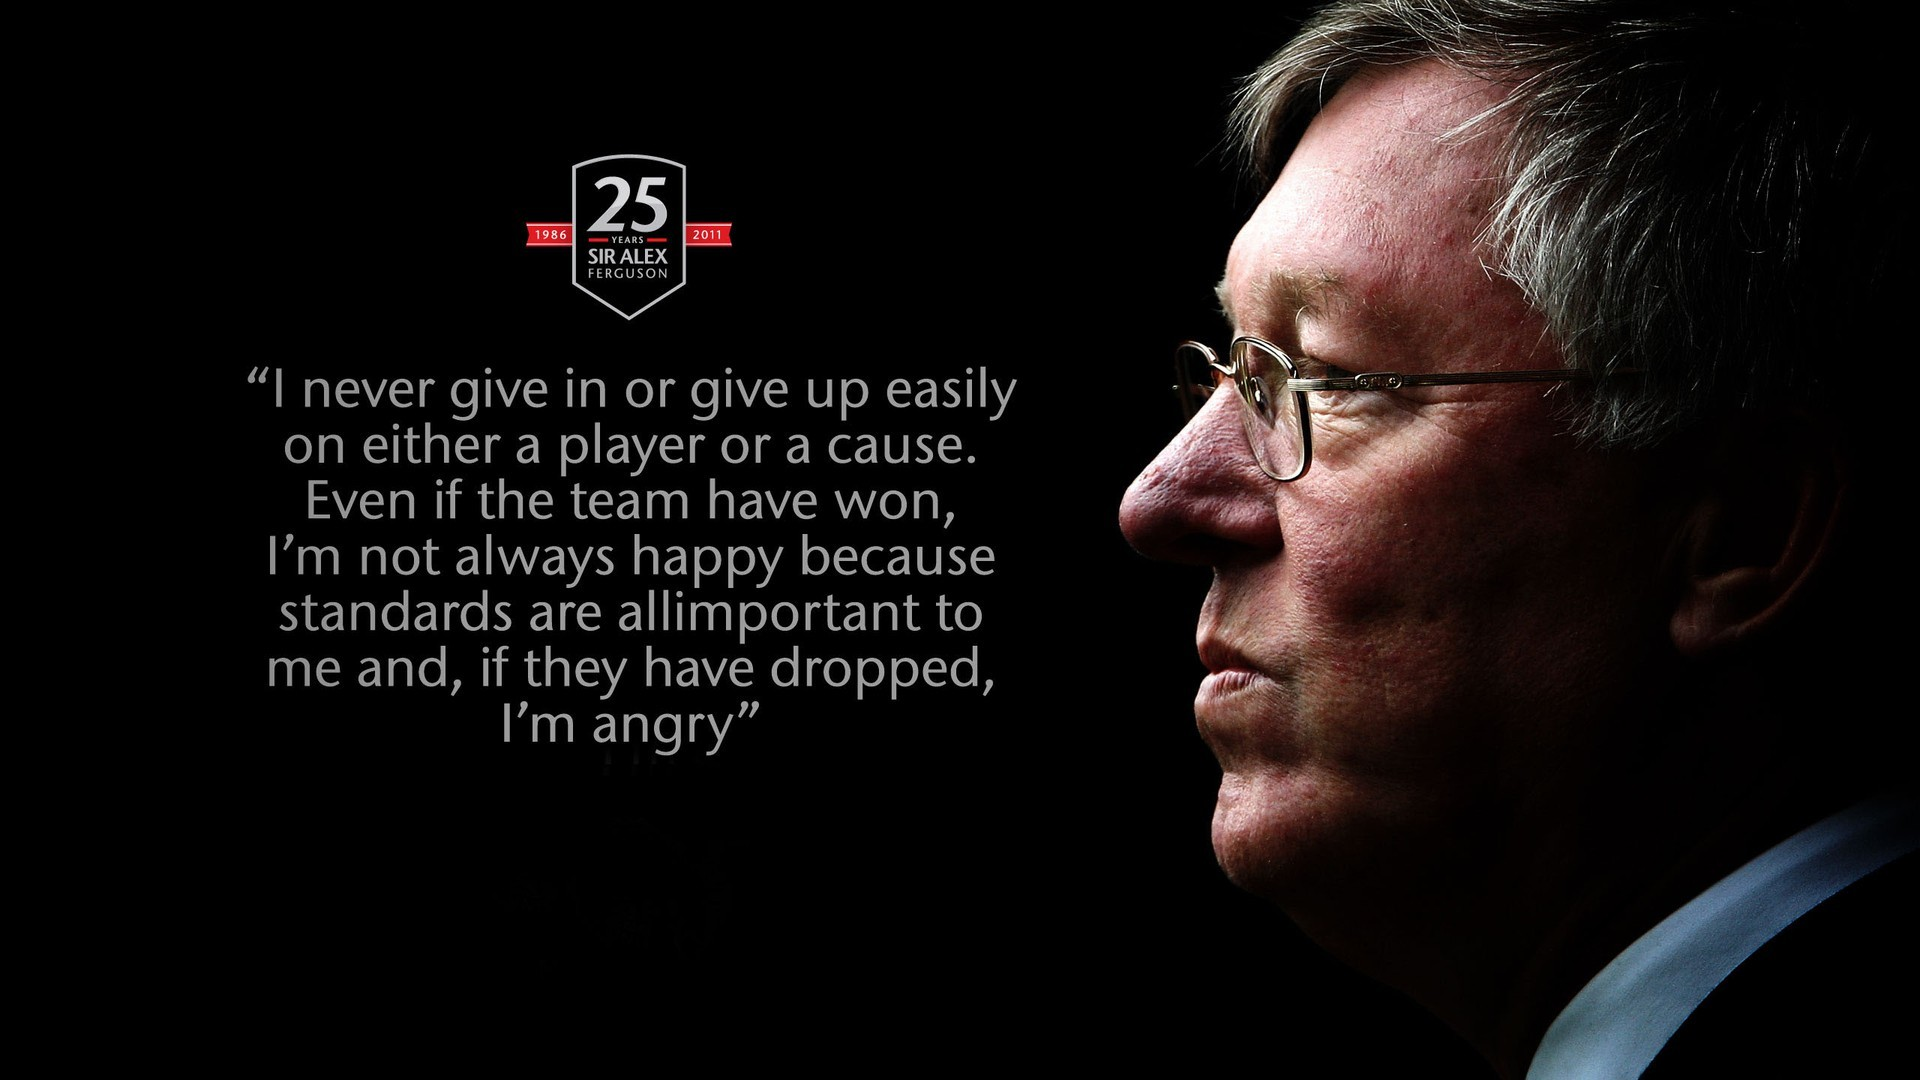 Manchester United Wallpaper Iphone X Alex Ferguson Wallpapers 57 Images